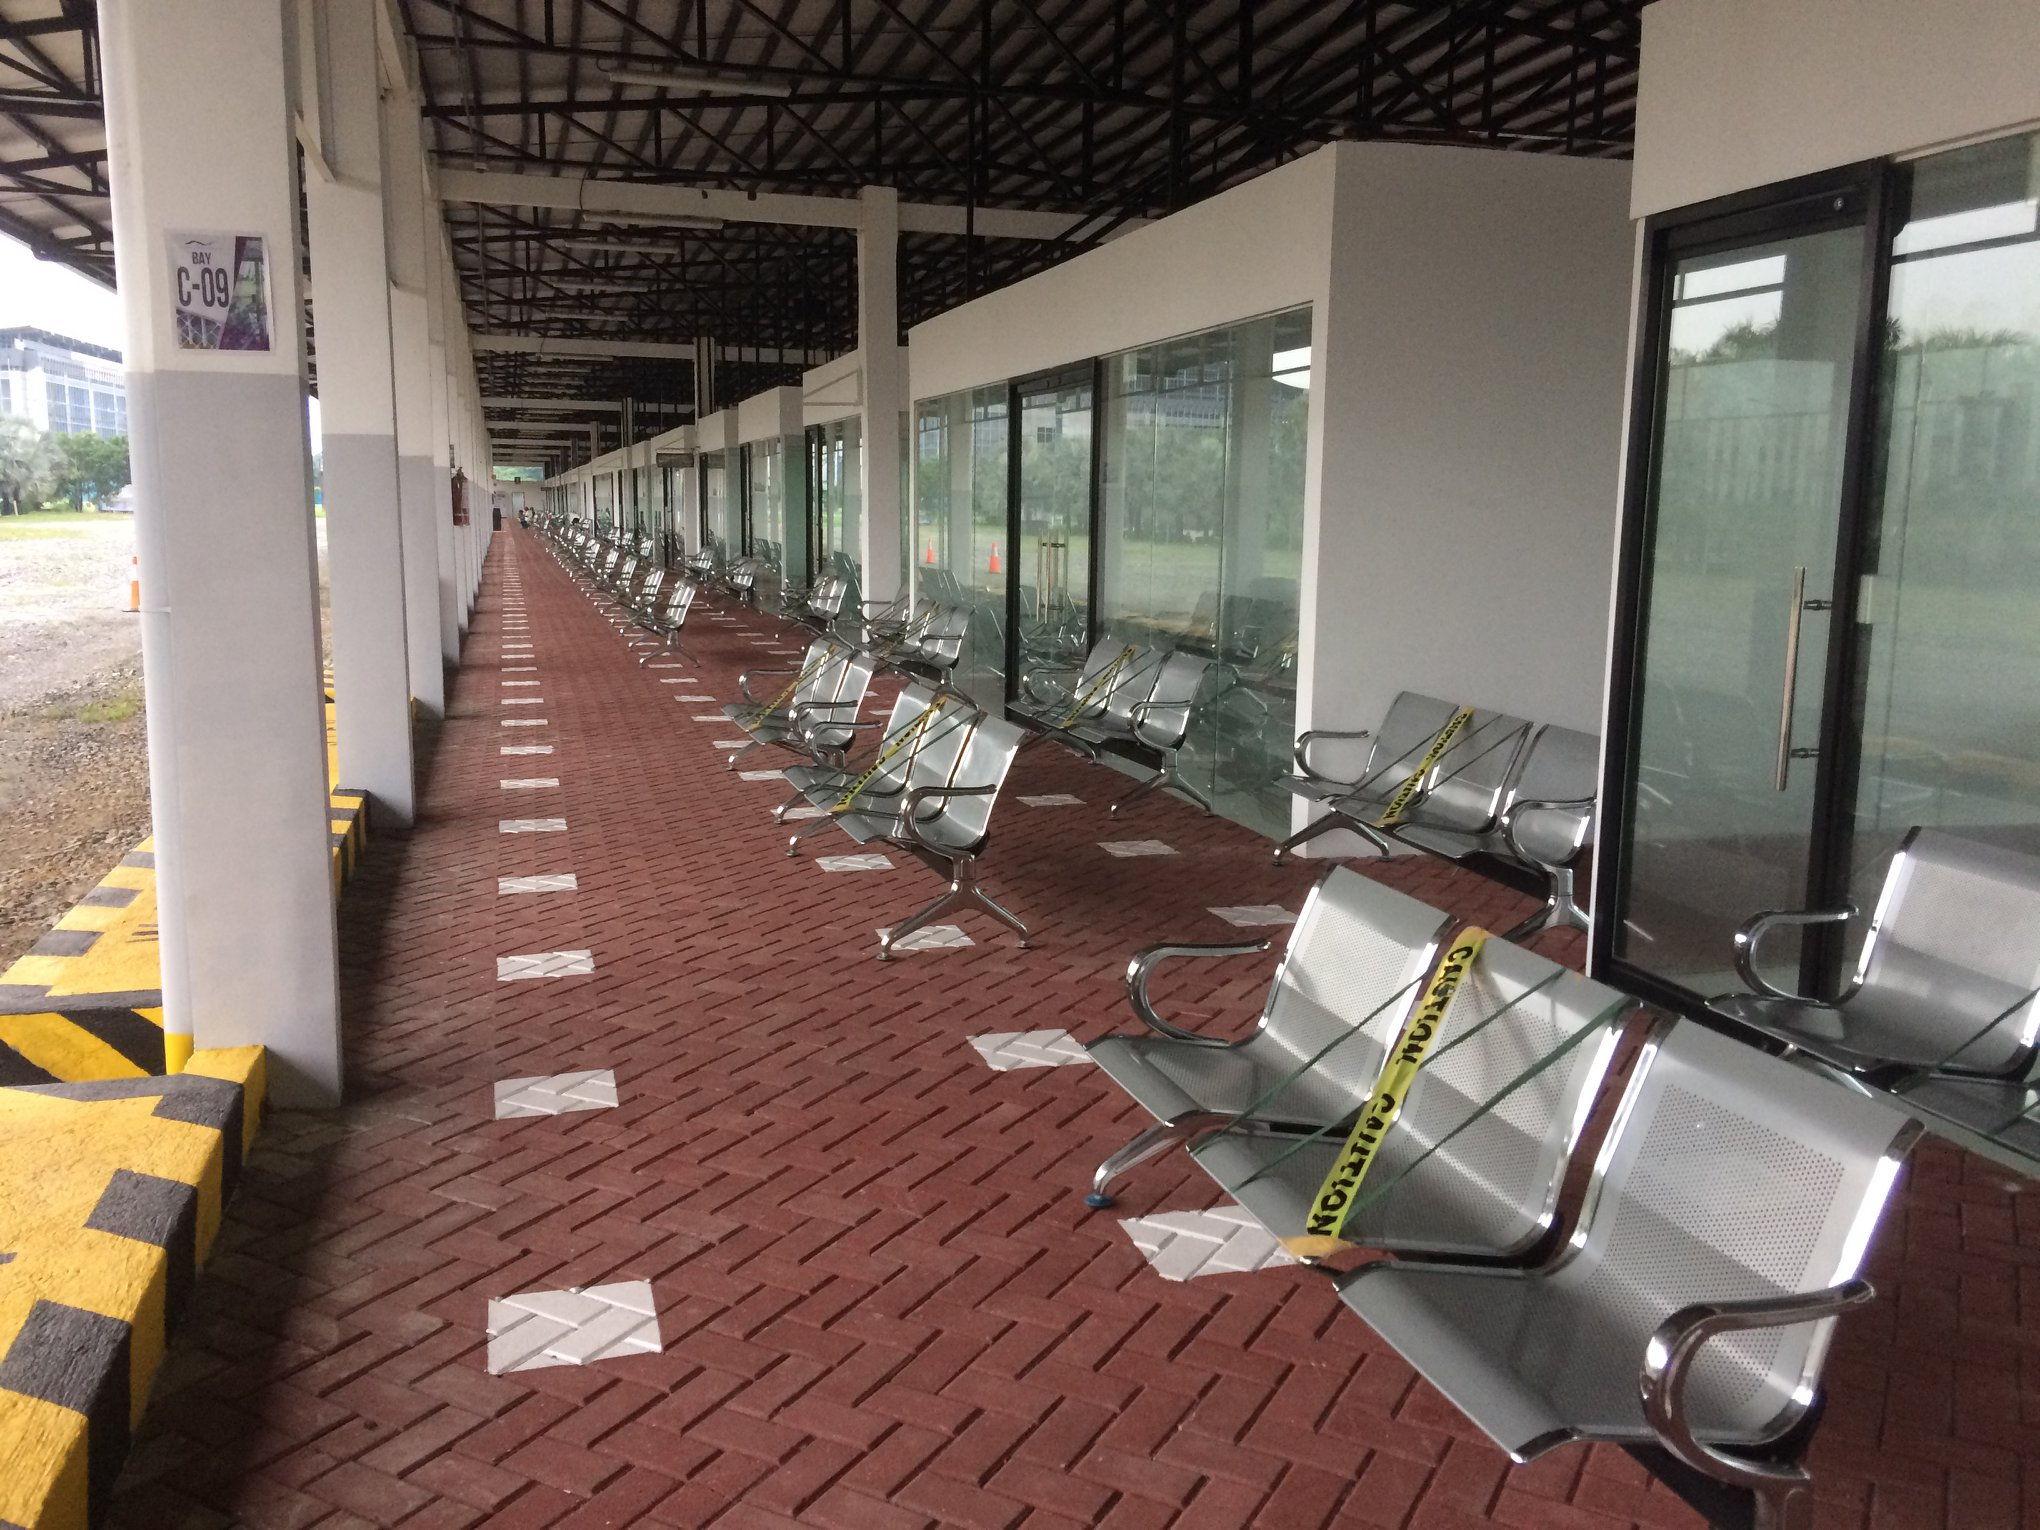 nlet-passenger-waiting-area.jpg